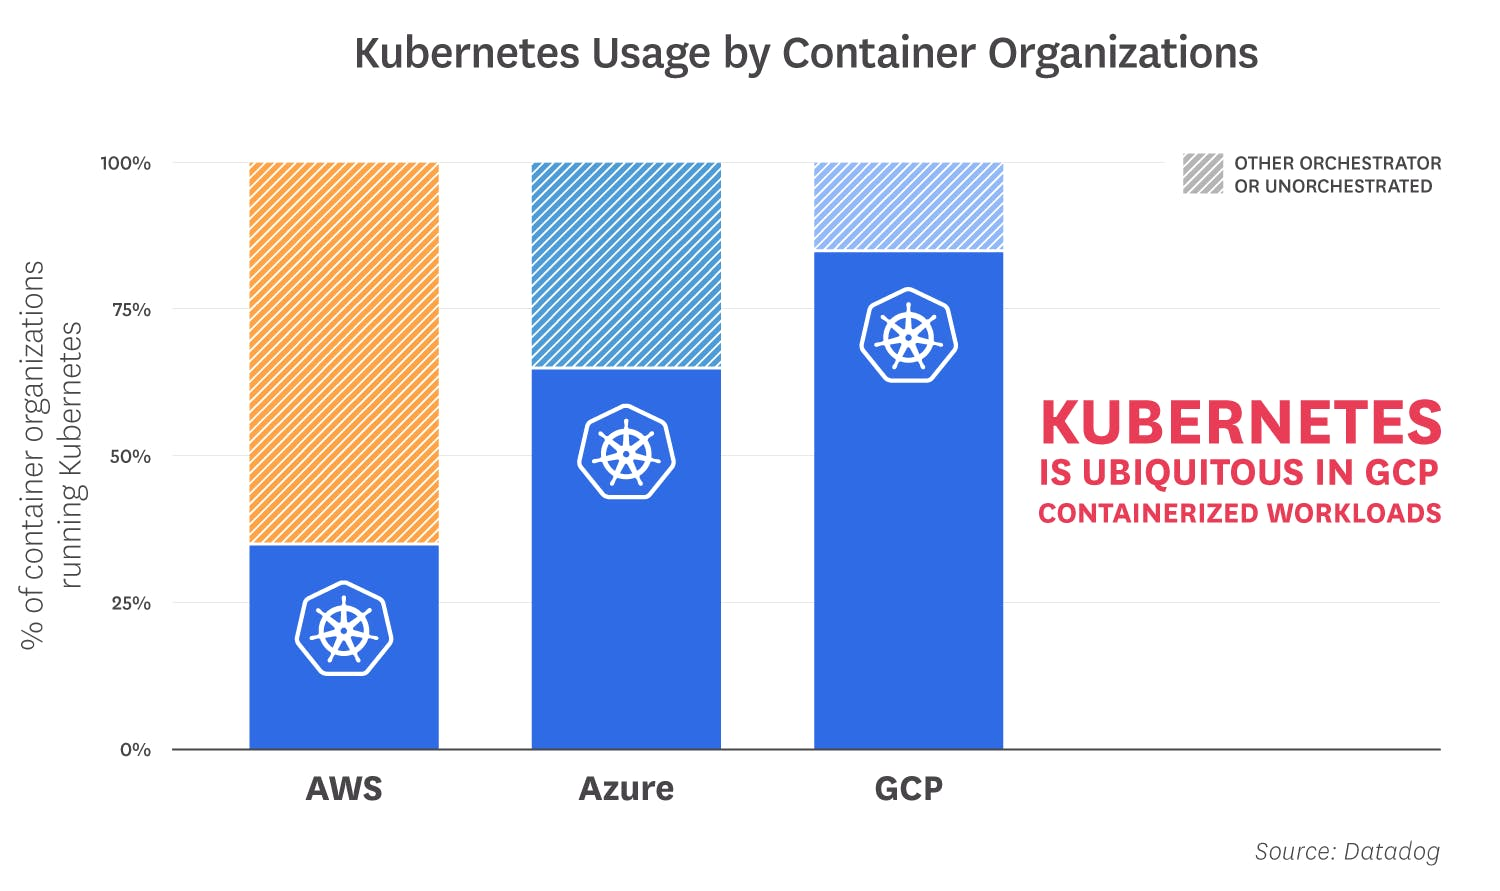 container-orchestration-2018/orchestration-2018-fact-1-v3